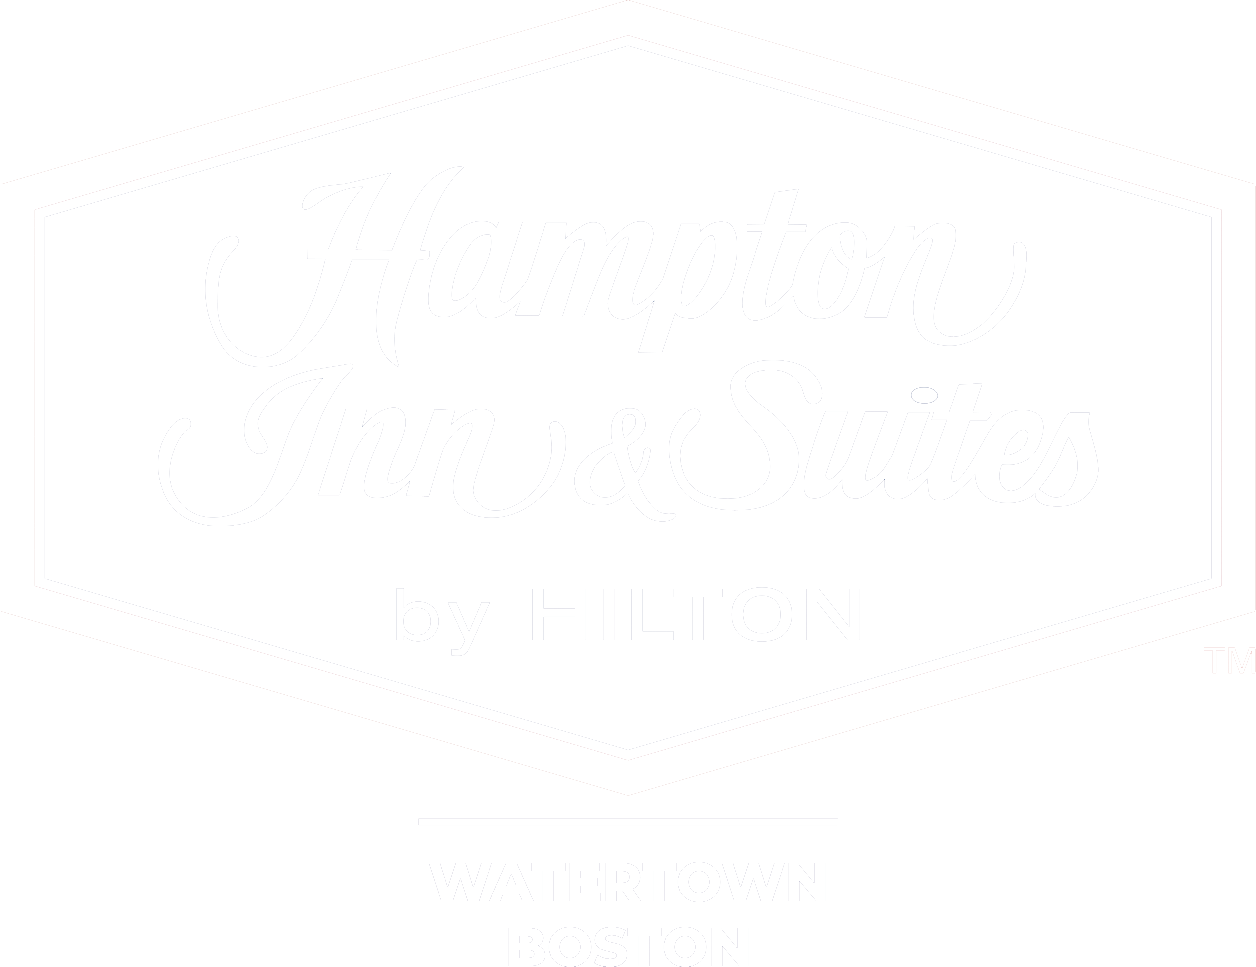 Hampton Inn & Suites by Hilton Logo